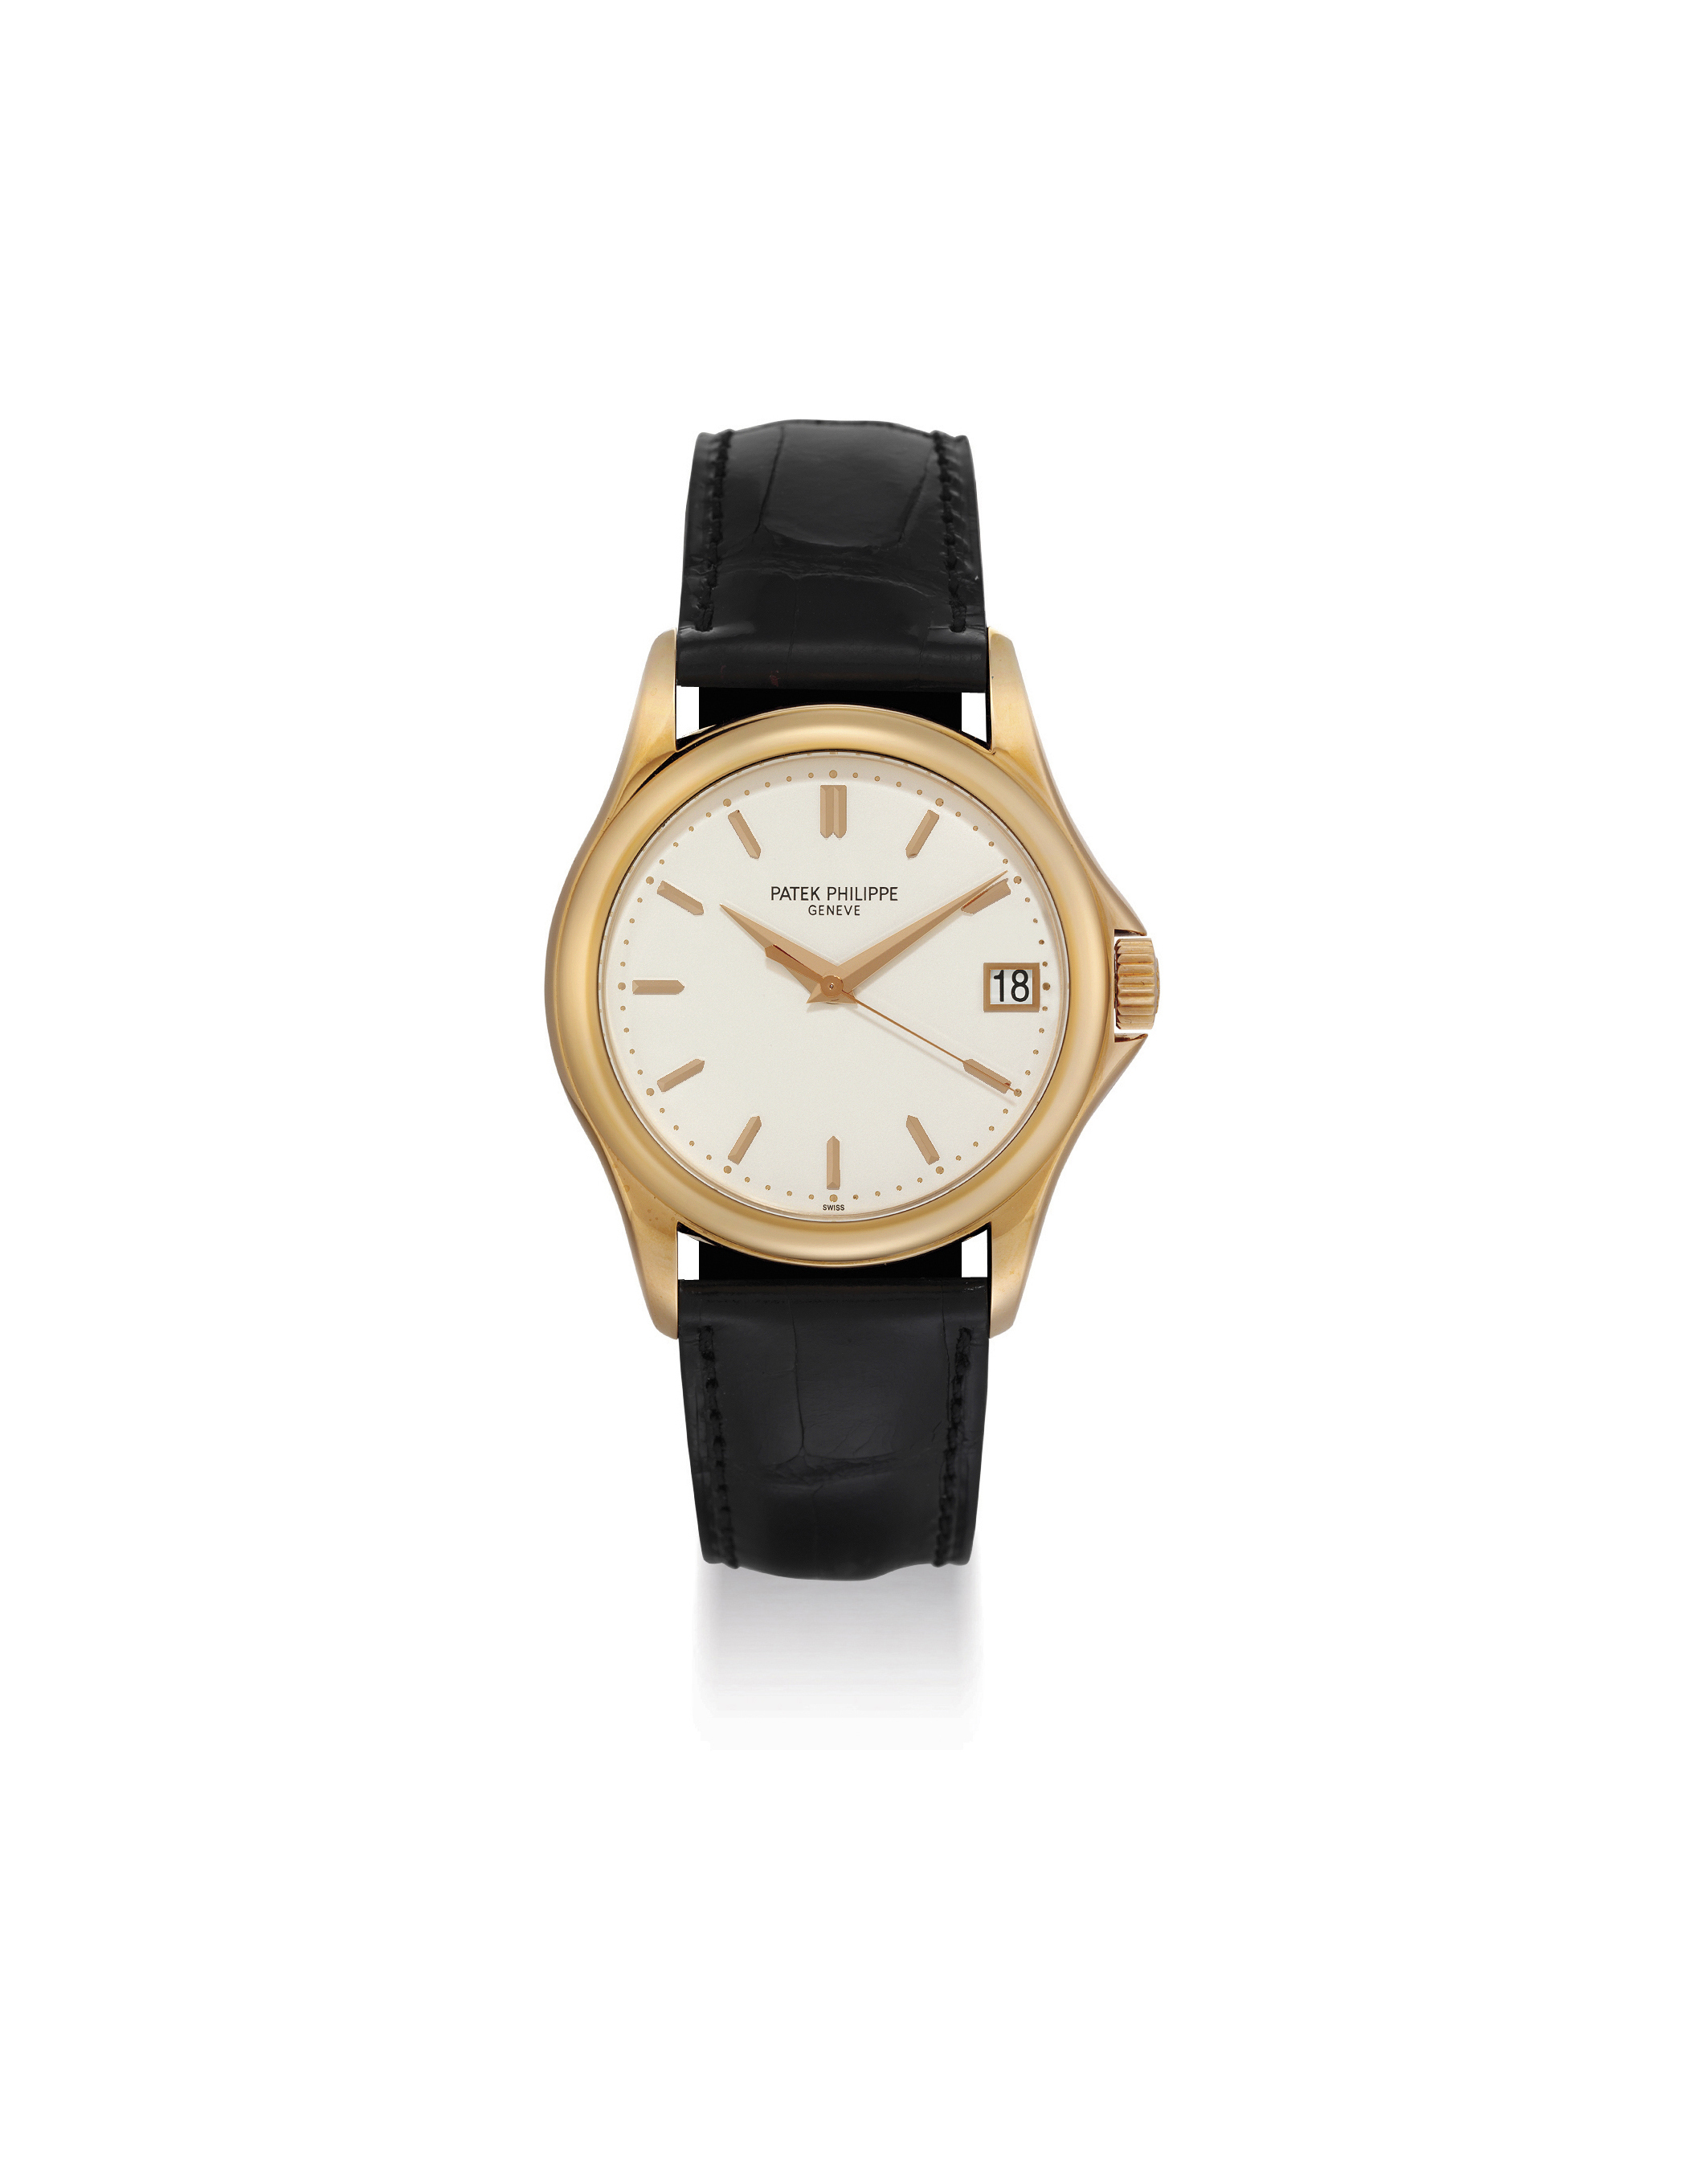 PATEK PHILIPPE. A FINE 18K PINK GOLD AUTOMATIC WRISTWATCH WITH SWEEP CENTRE SECONDS AND DATE